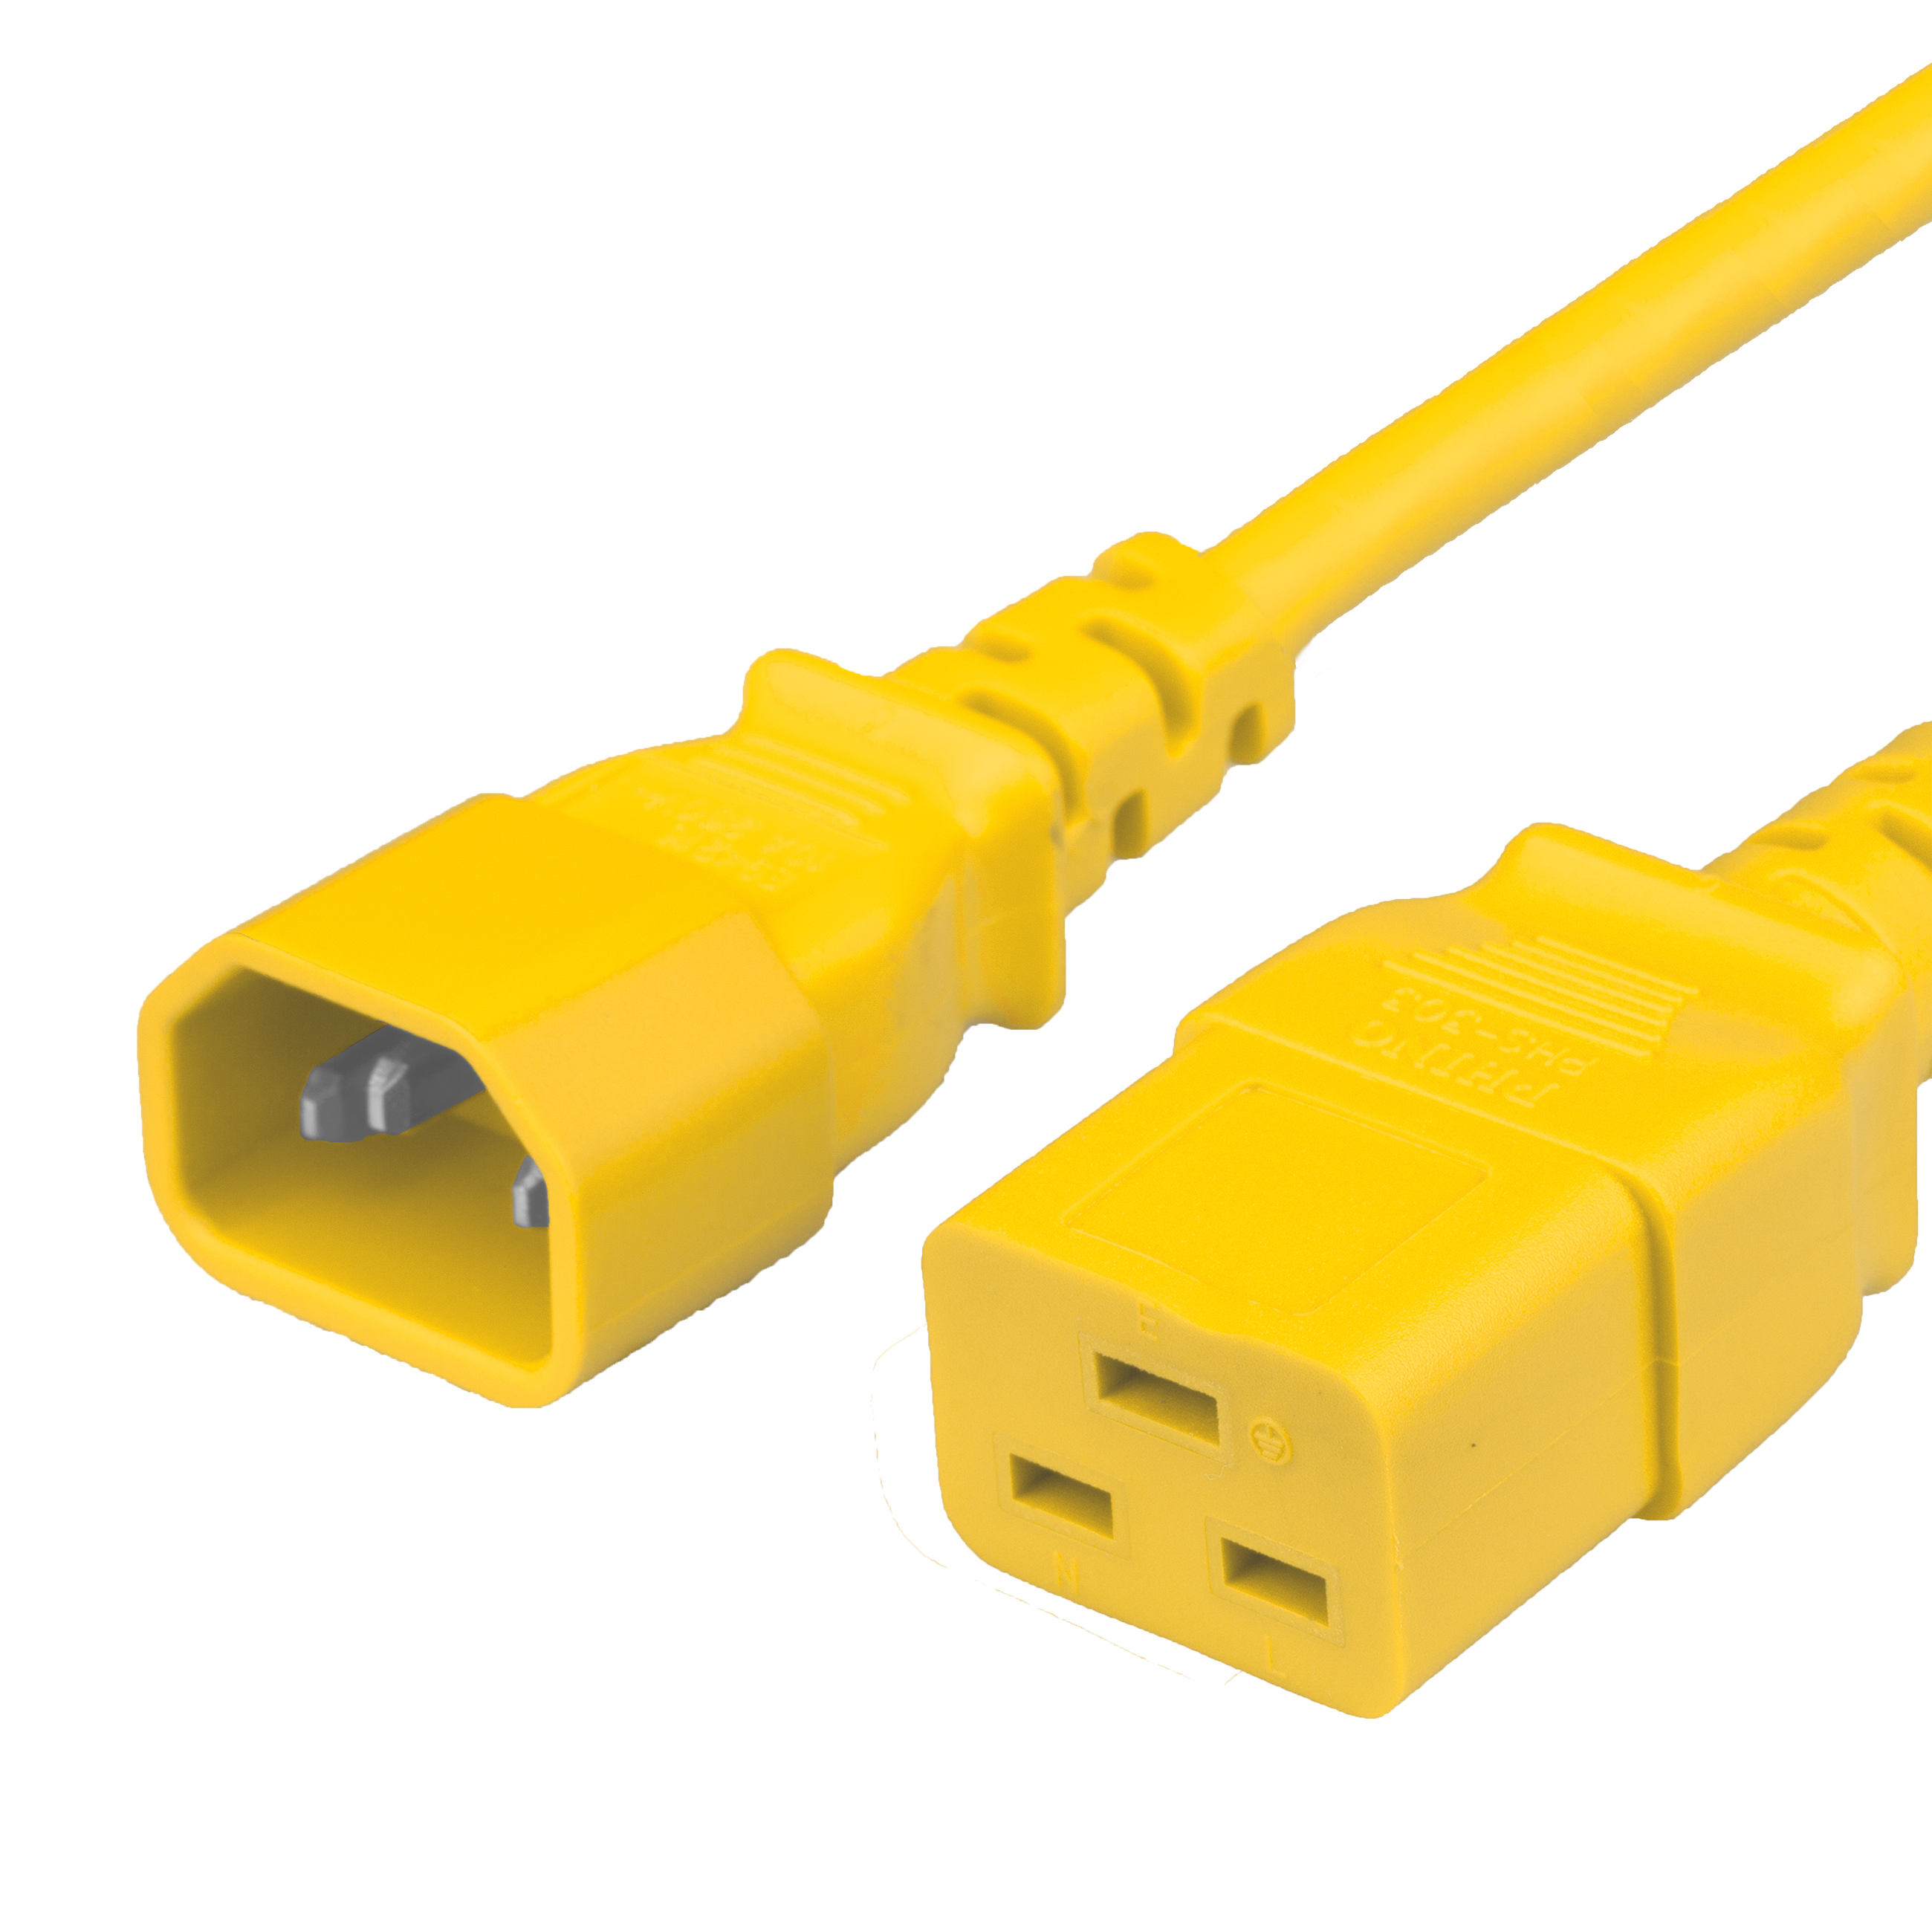 Yellow 15A C14 C19 Power Cords